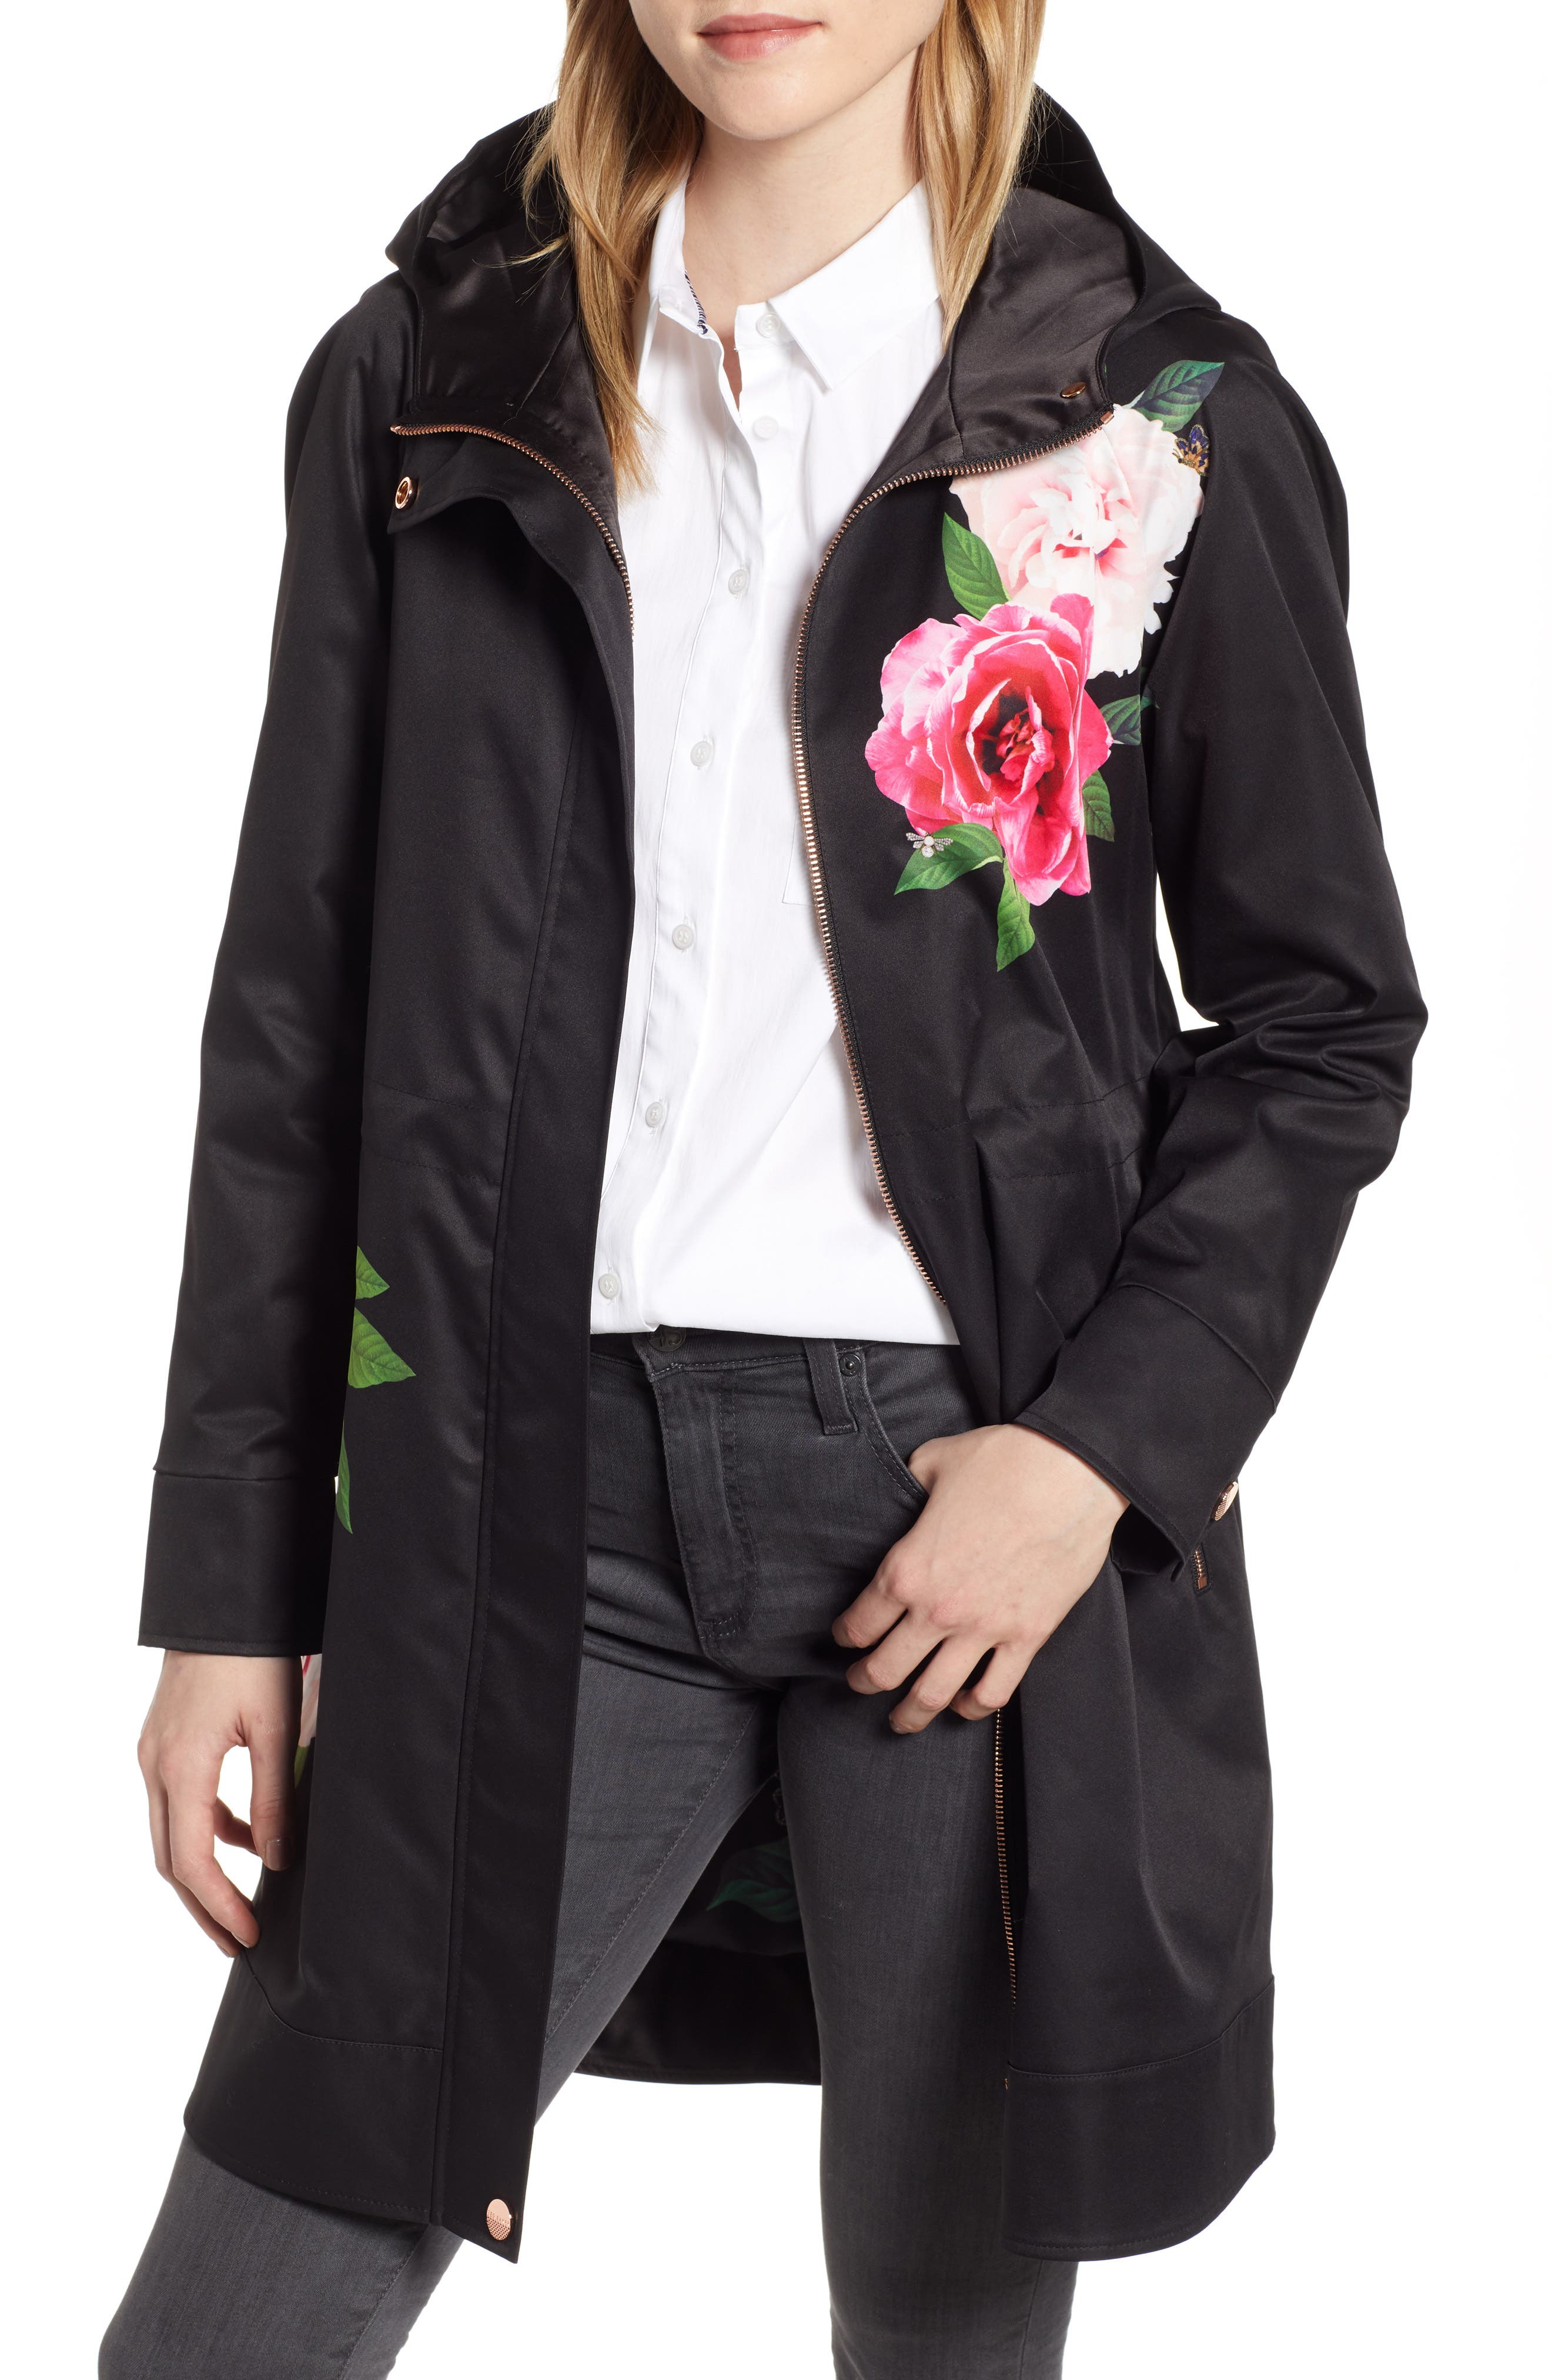 TED BAKER LONDON, Magnificent Hooded Parka Jacket, Main thumbnail 1, color, BLACK